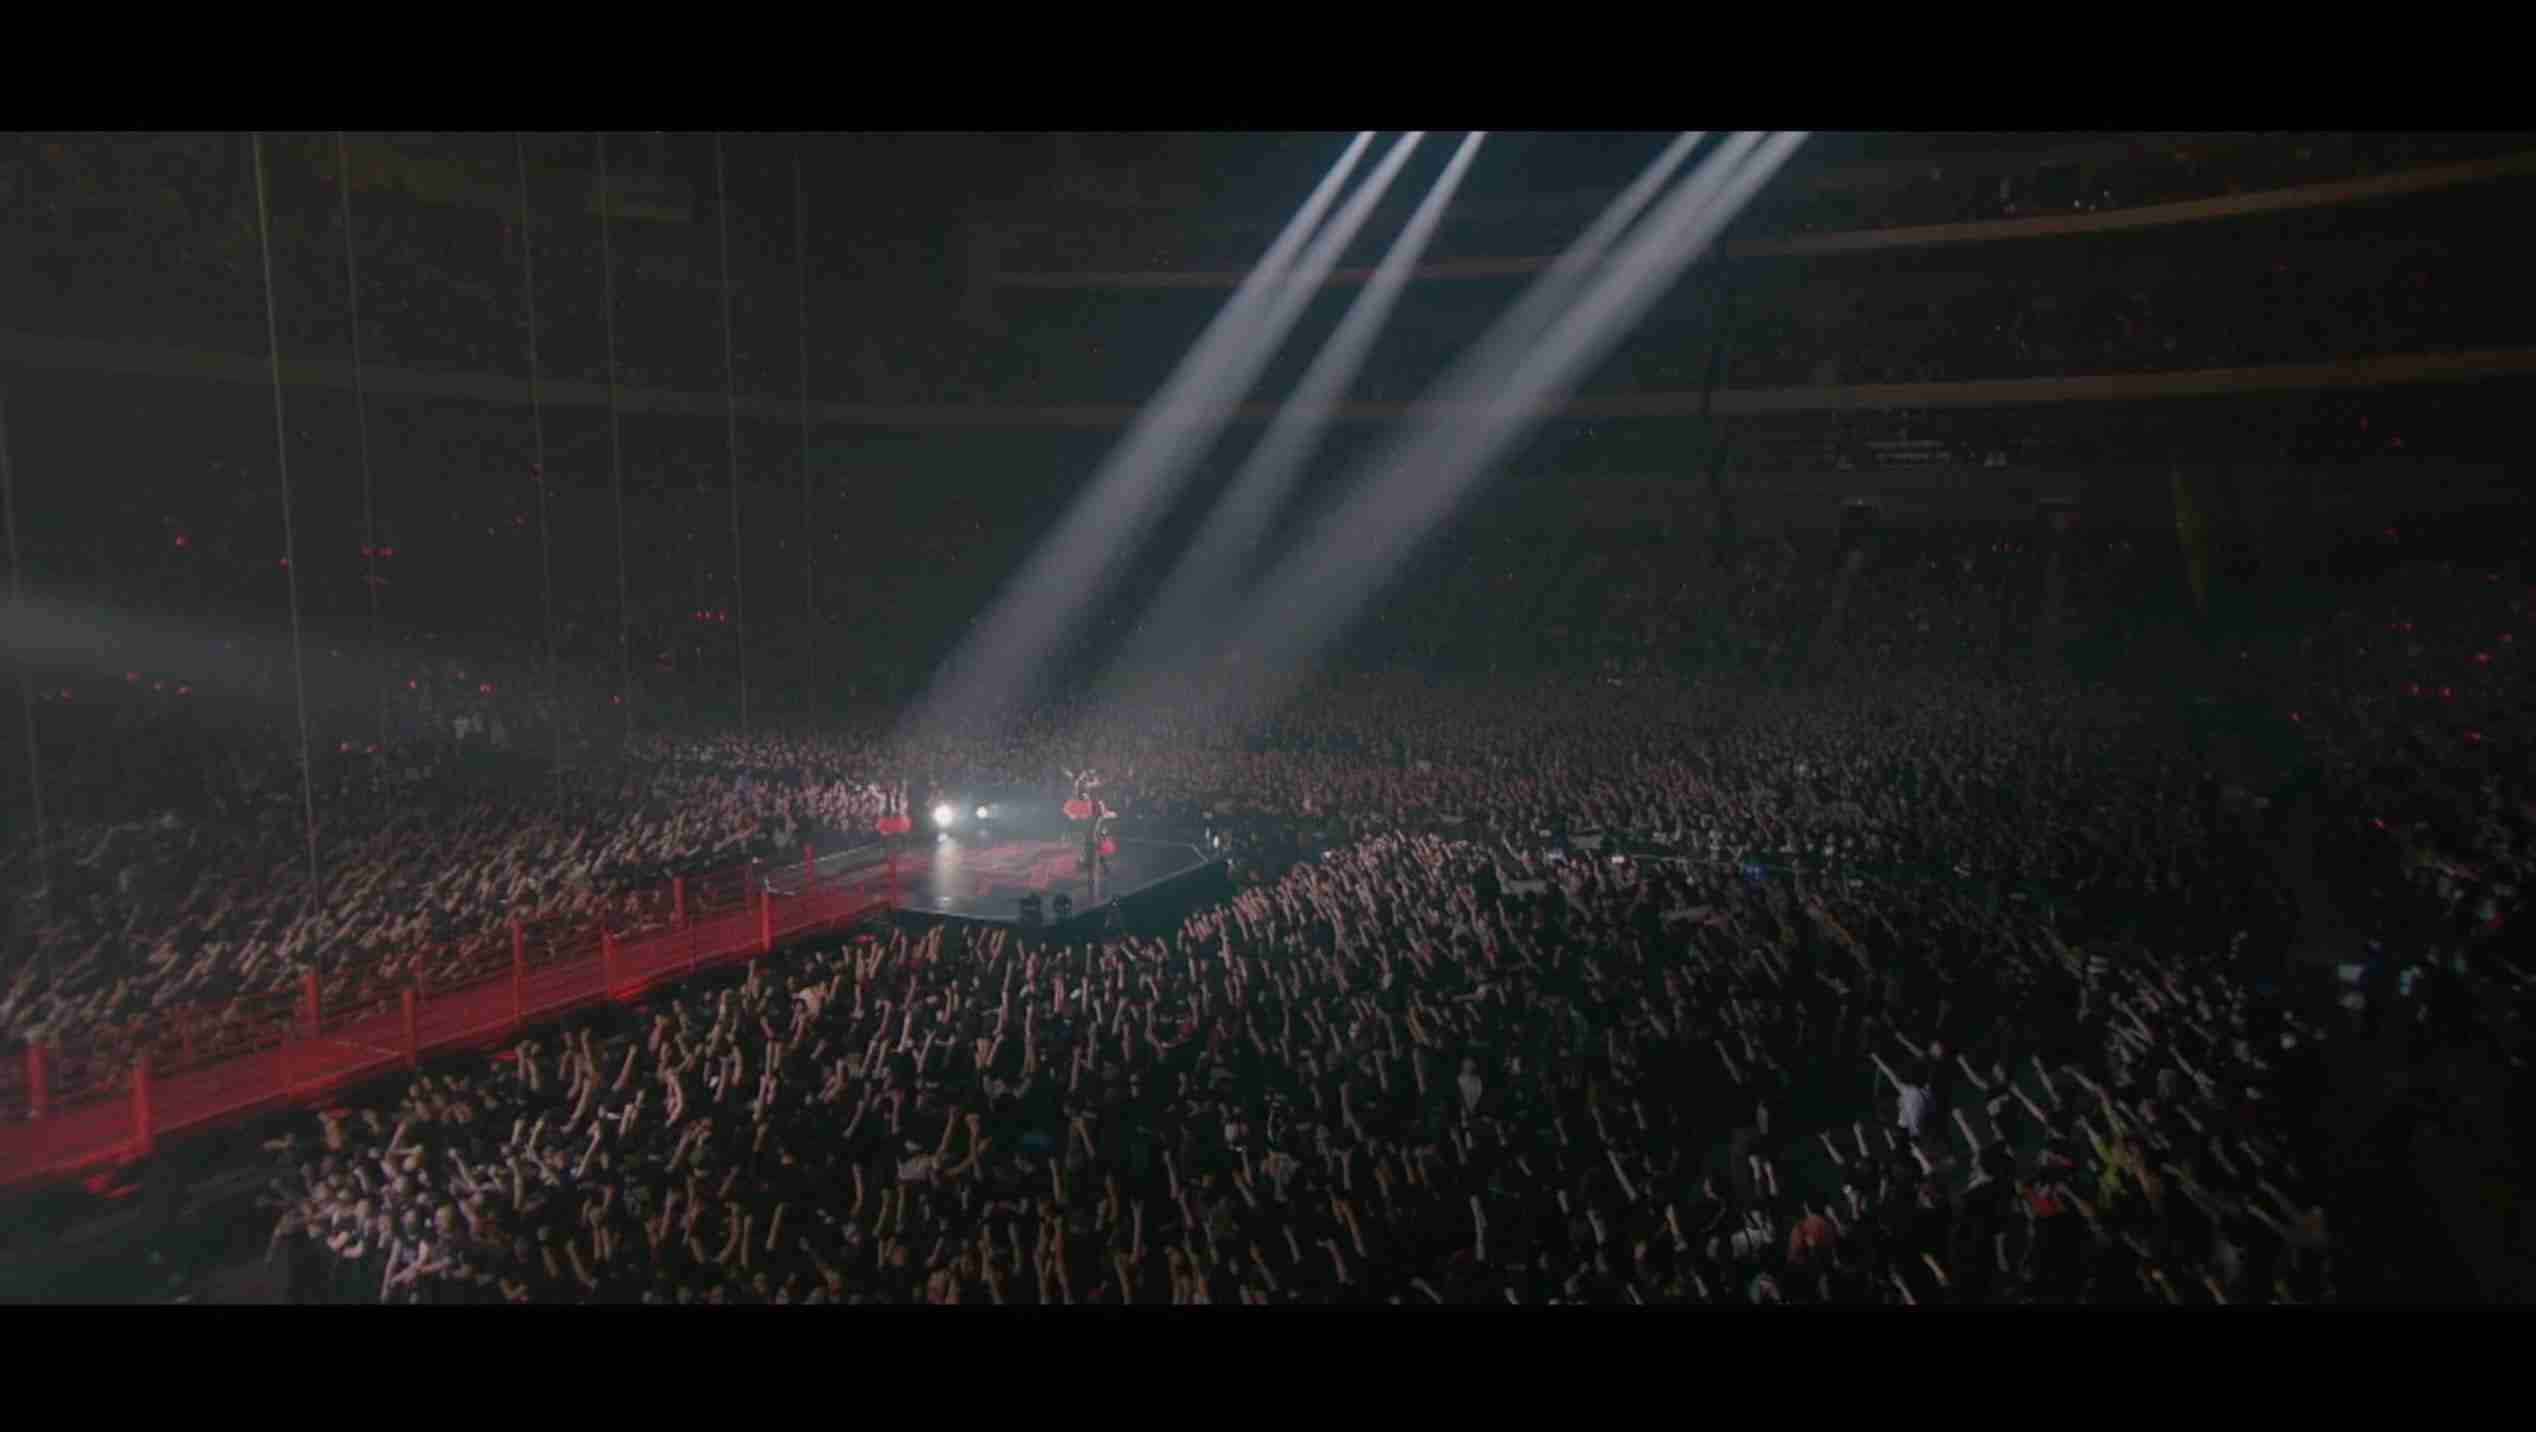 BABYMETAL - Road of Resistance - Live in Japan (OFFICIAL) - YouTube